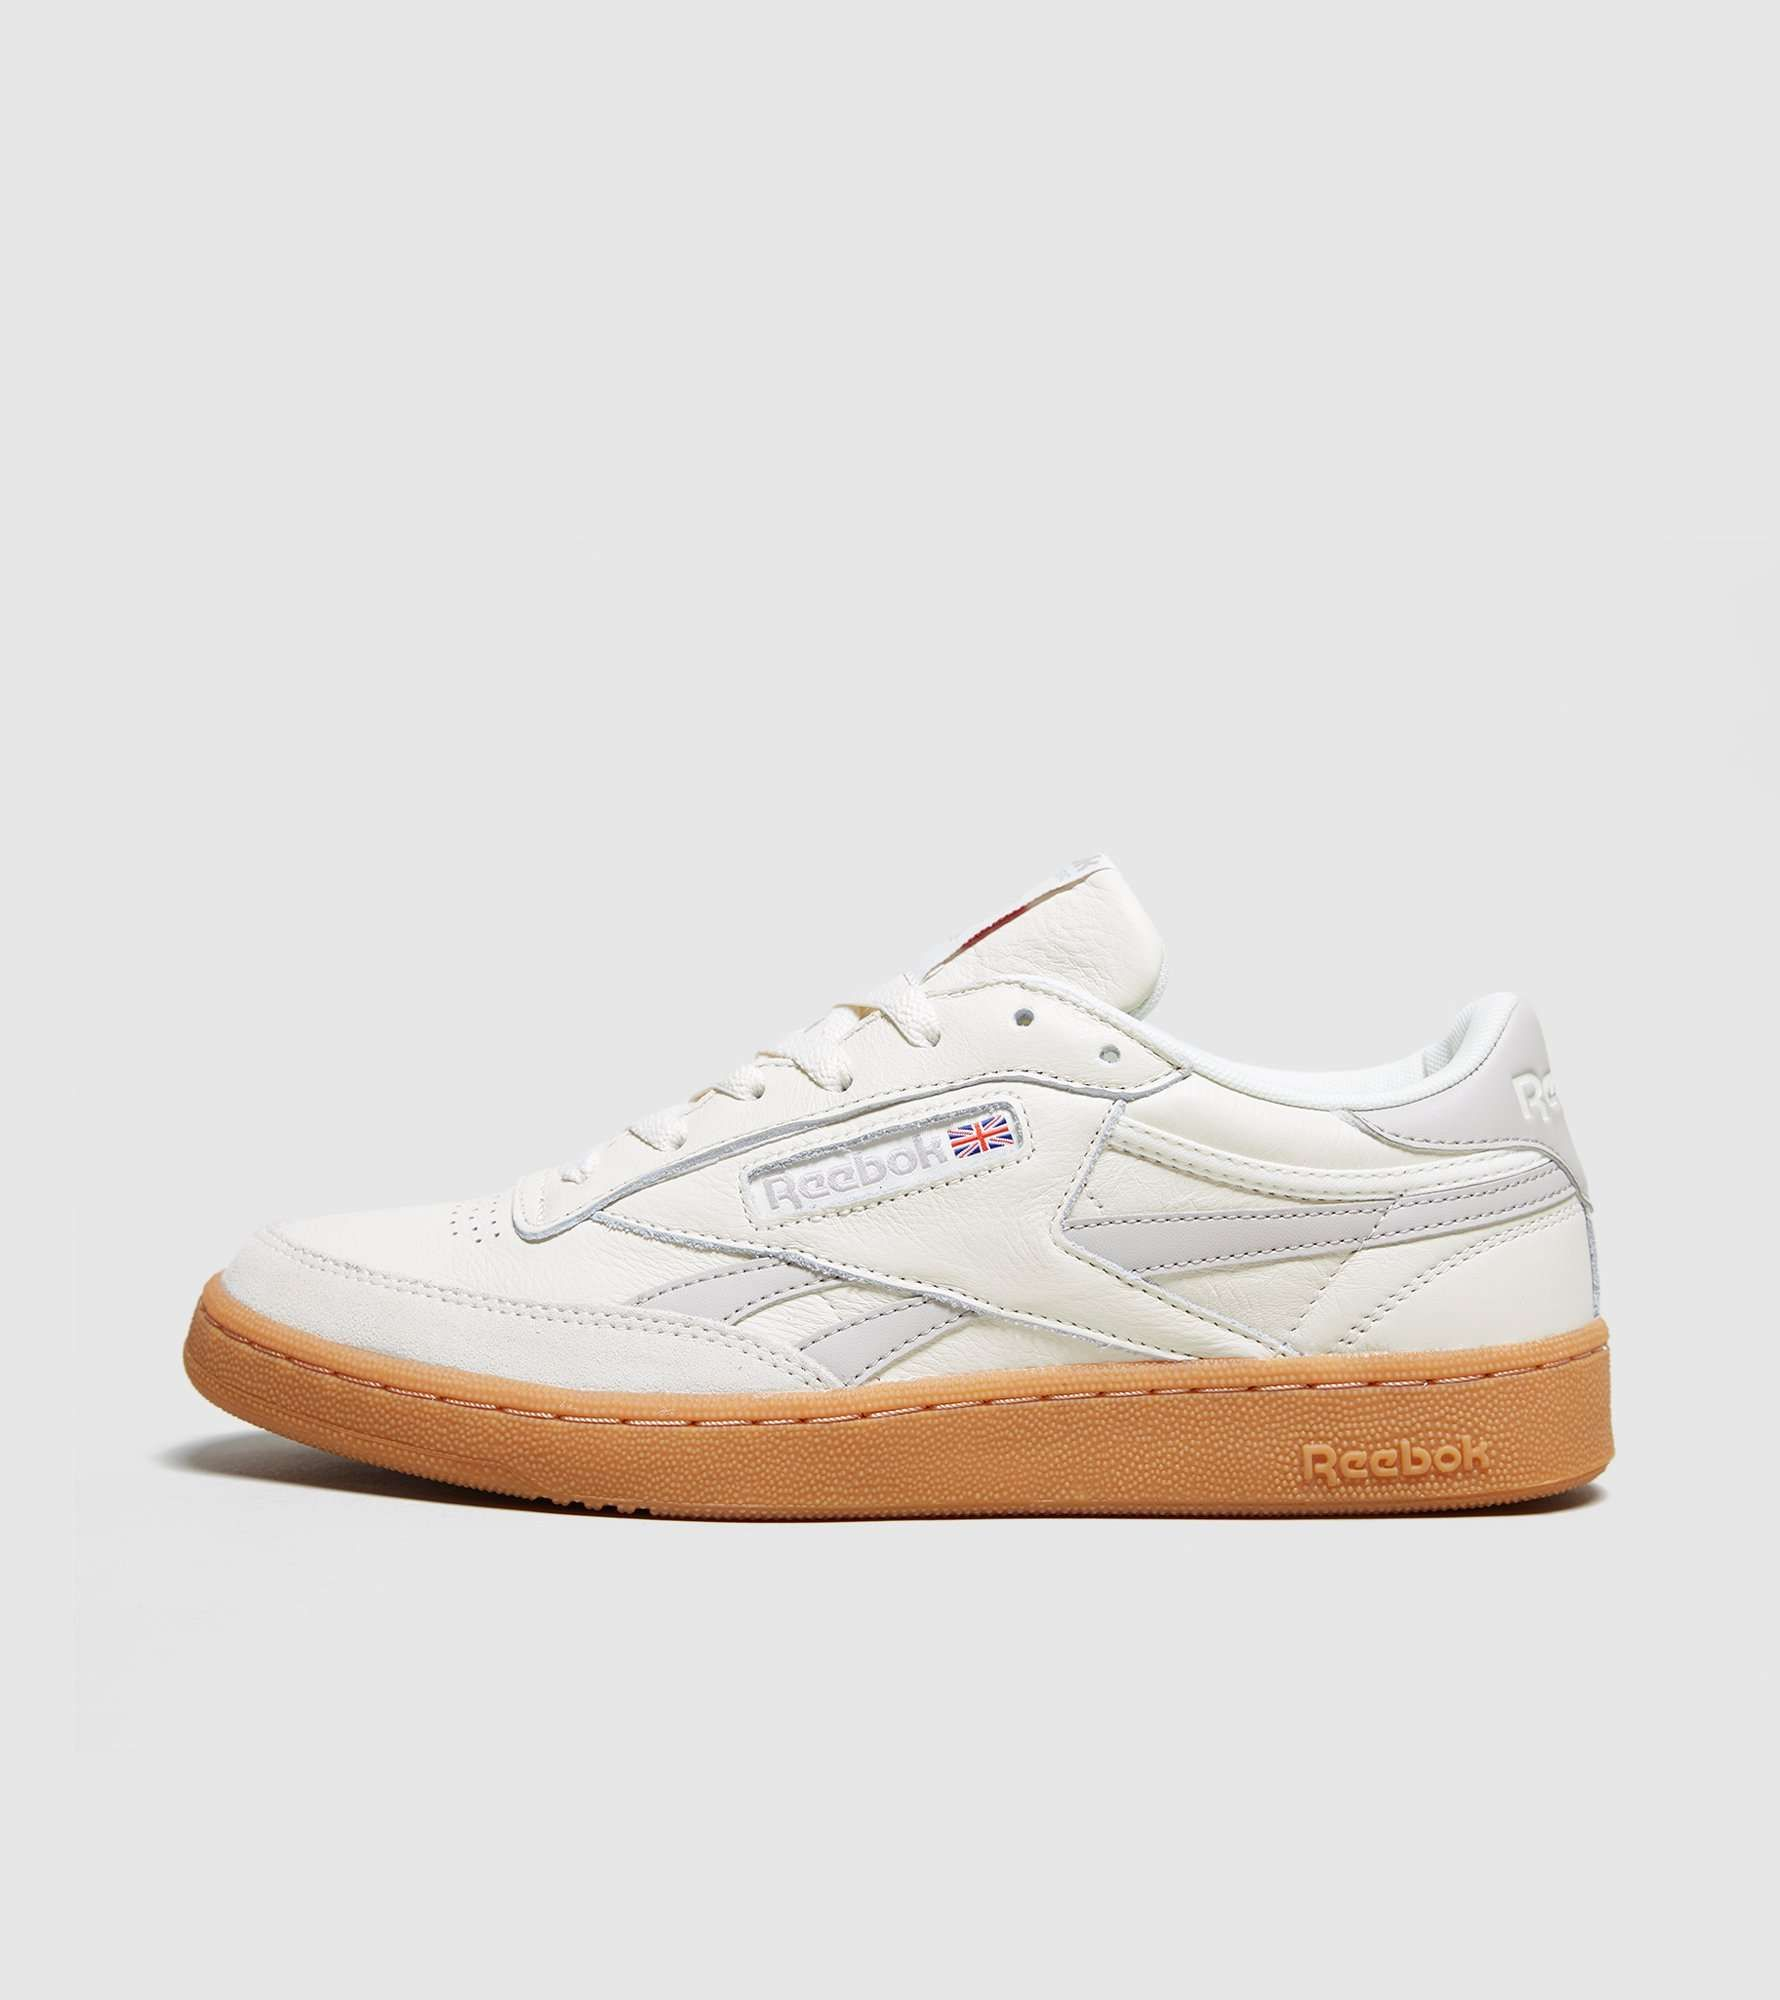 8babf532195 Reebok Revenge Plus - find out more on our site. Find the freshest in  trainers and clothing online now.